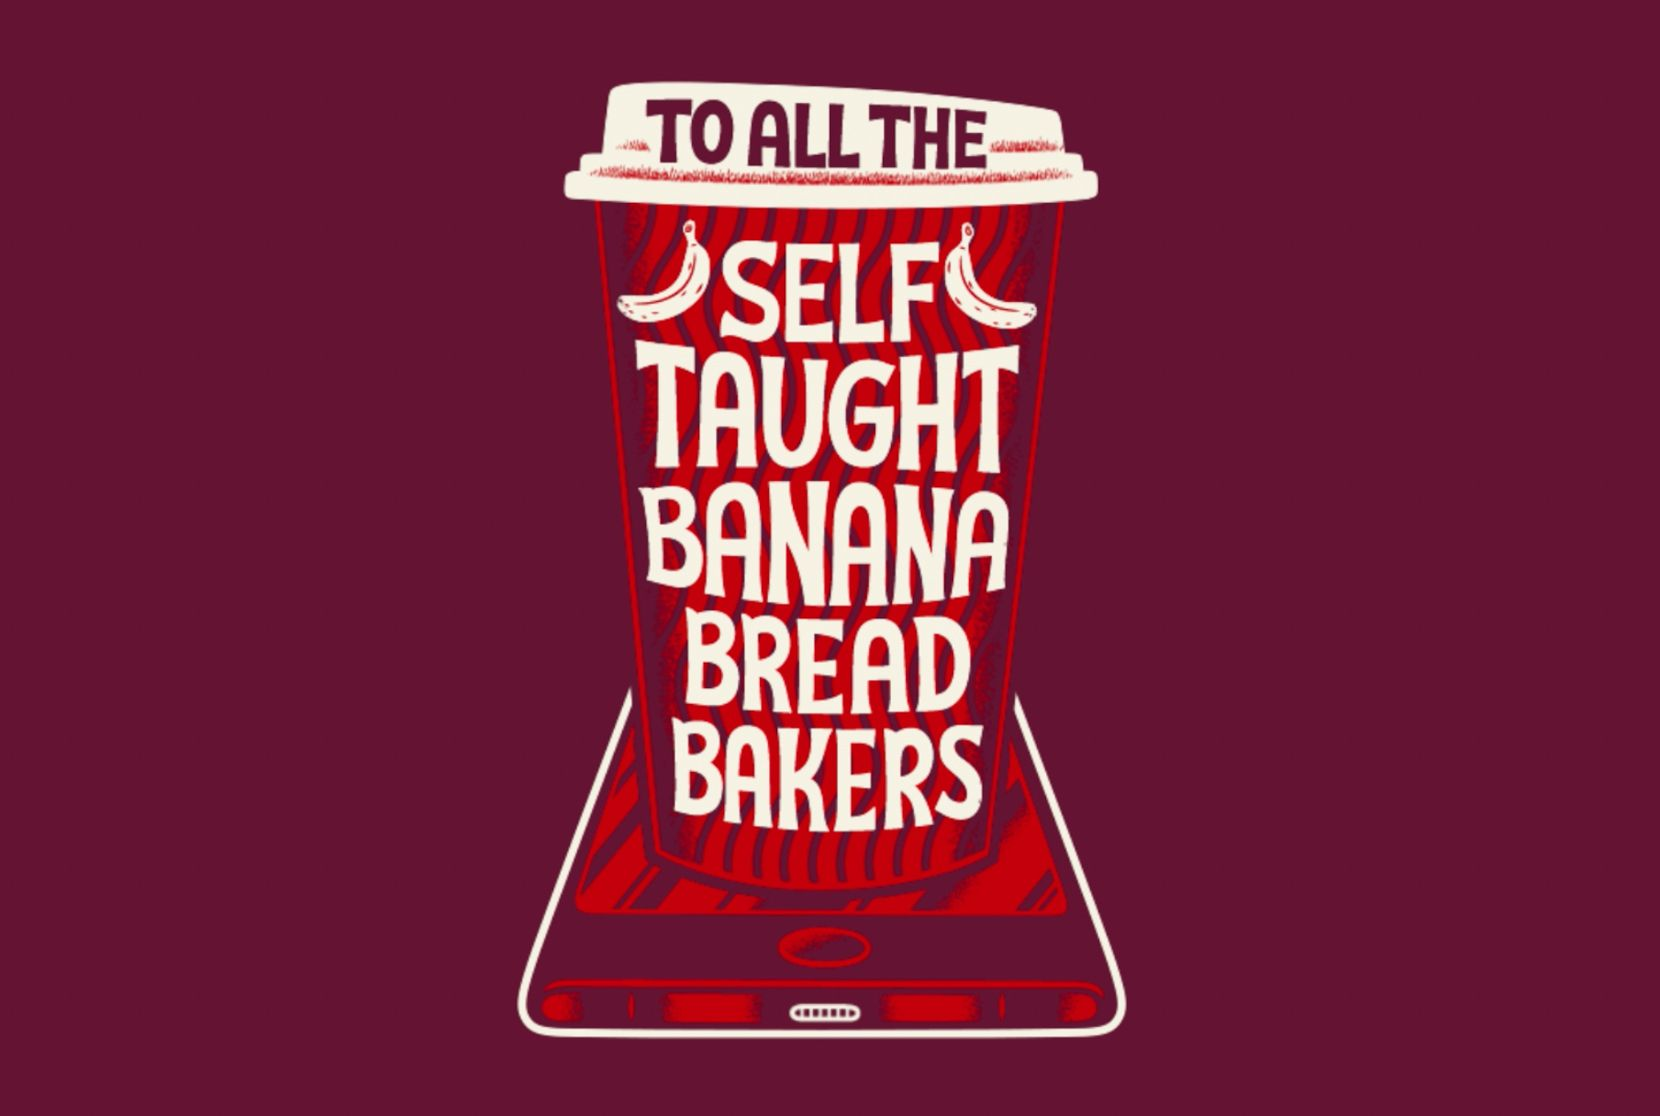 A coffee cup on a red background with text inside reading: 'To all the self taught banana bread makers'